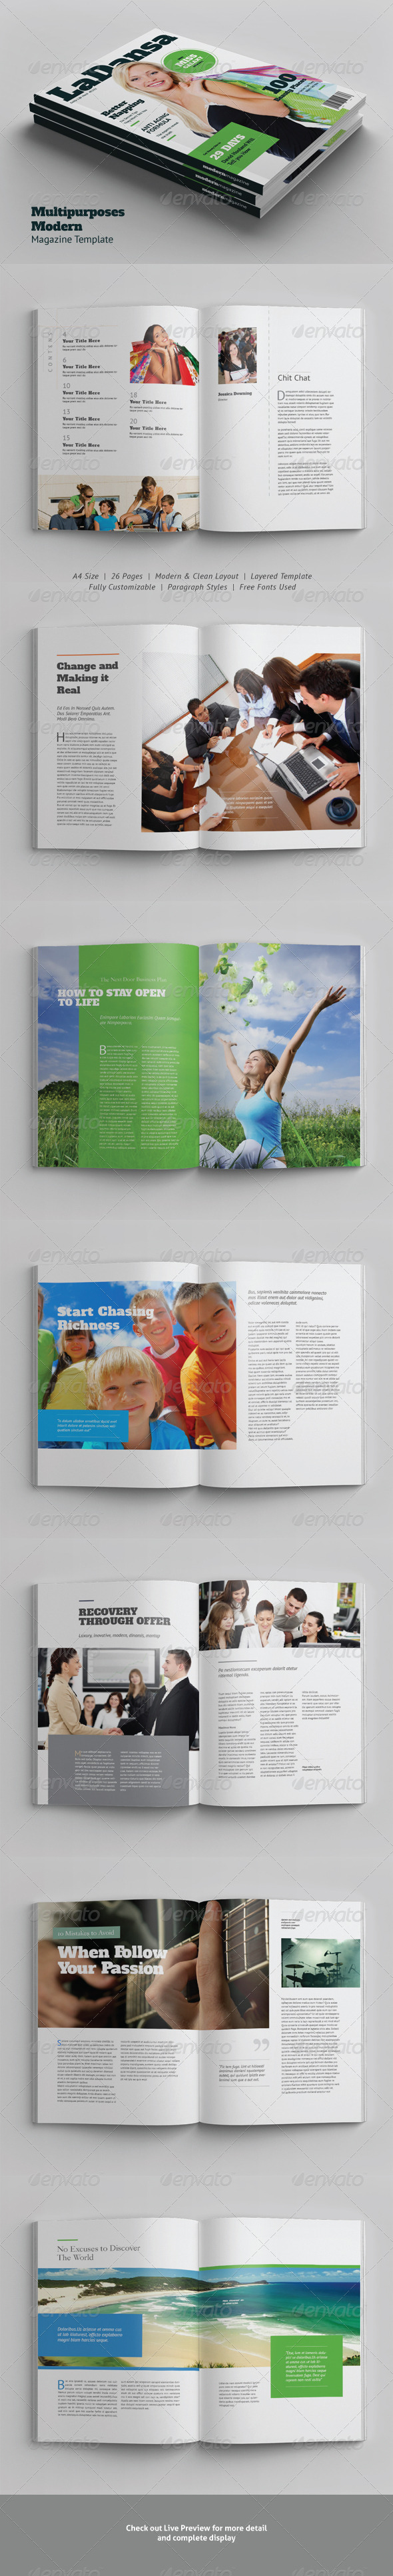 GraphicRiver Multipurposes Modern Magazine Template 6045305